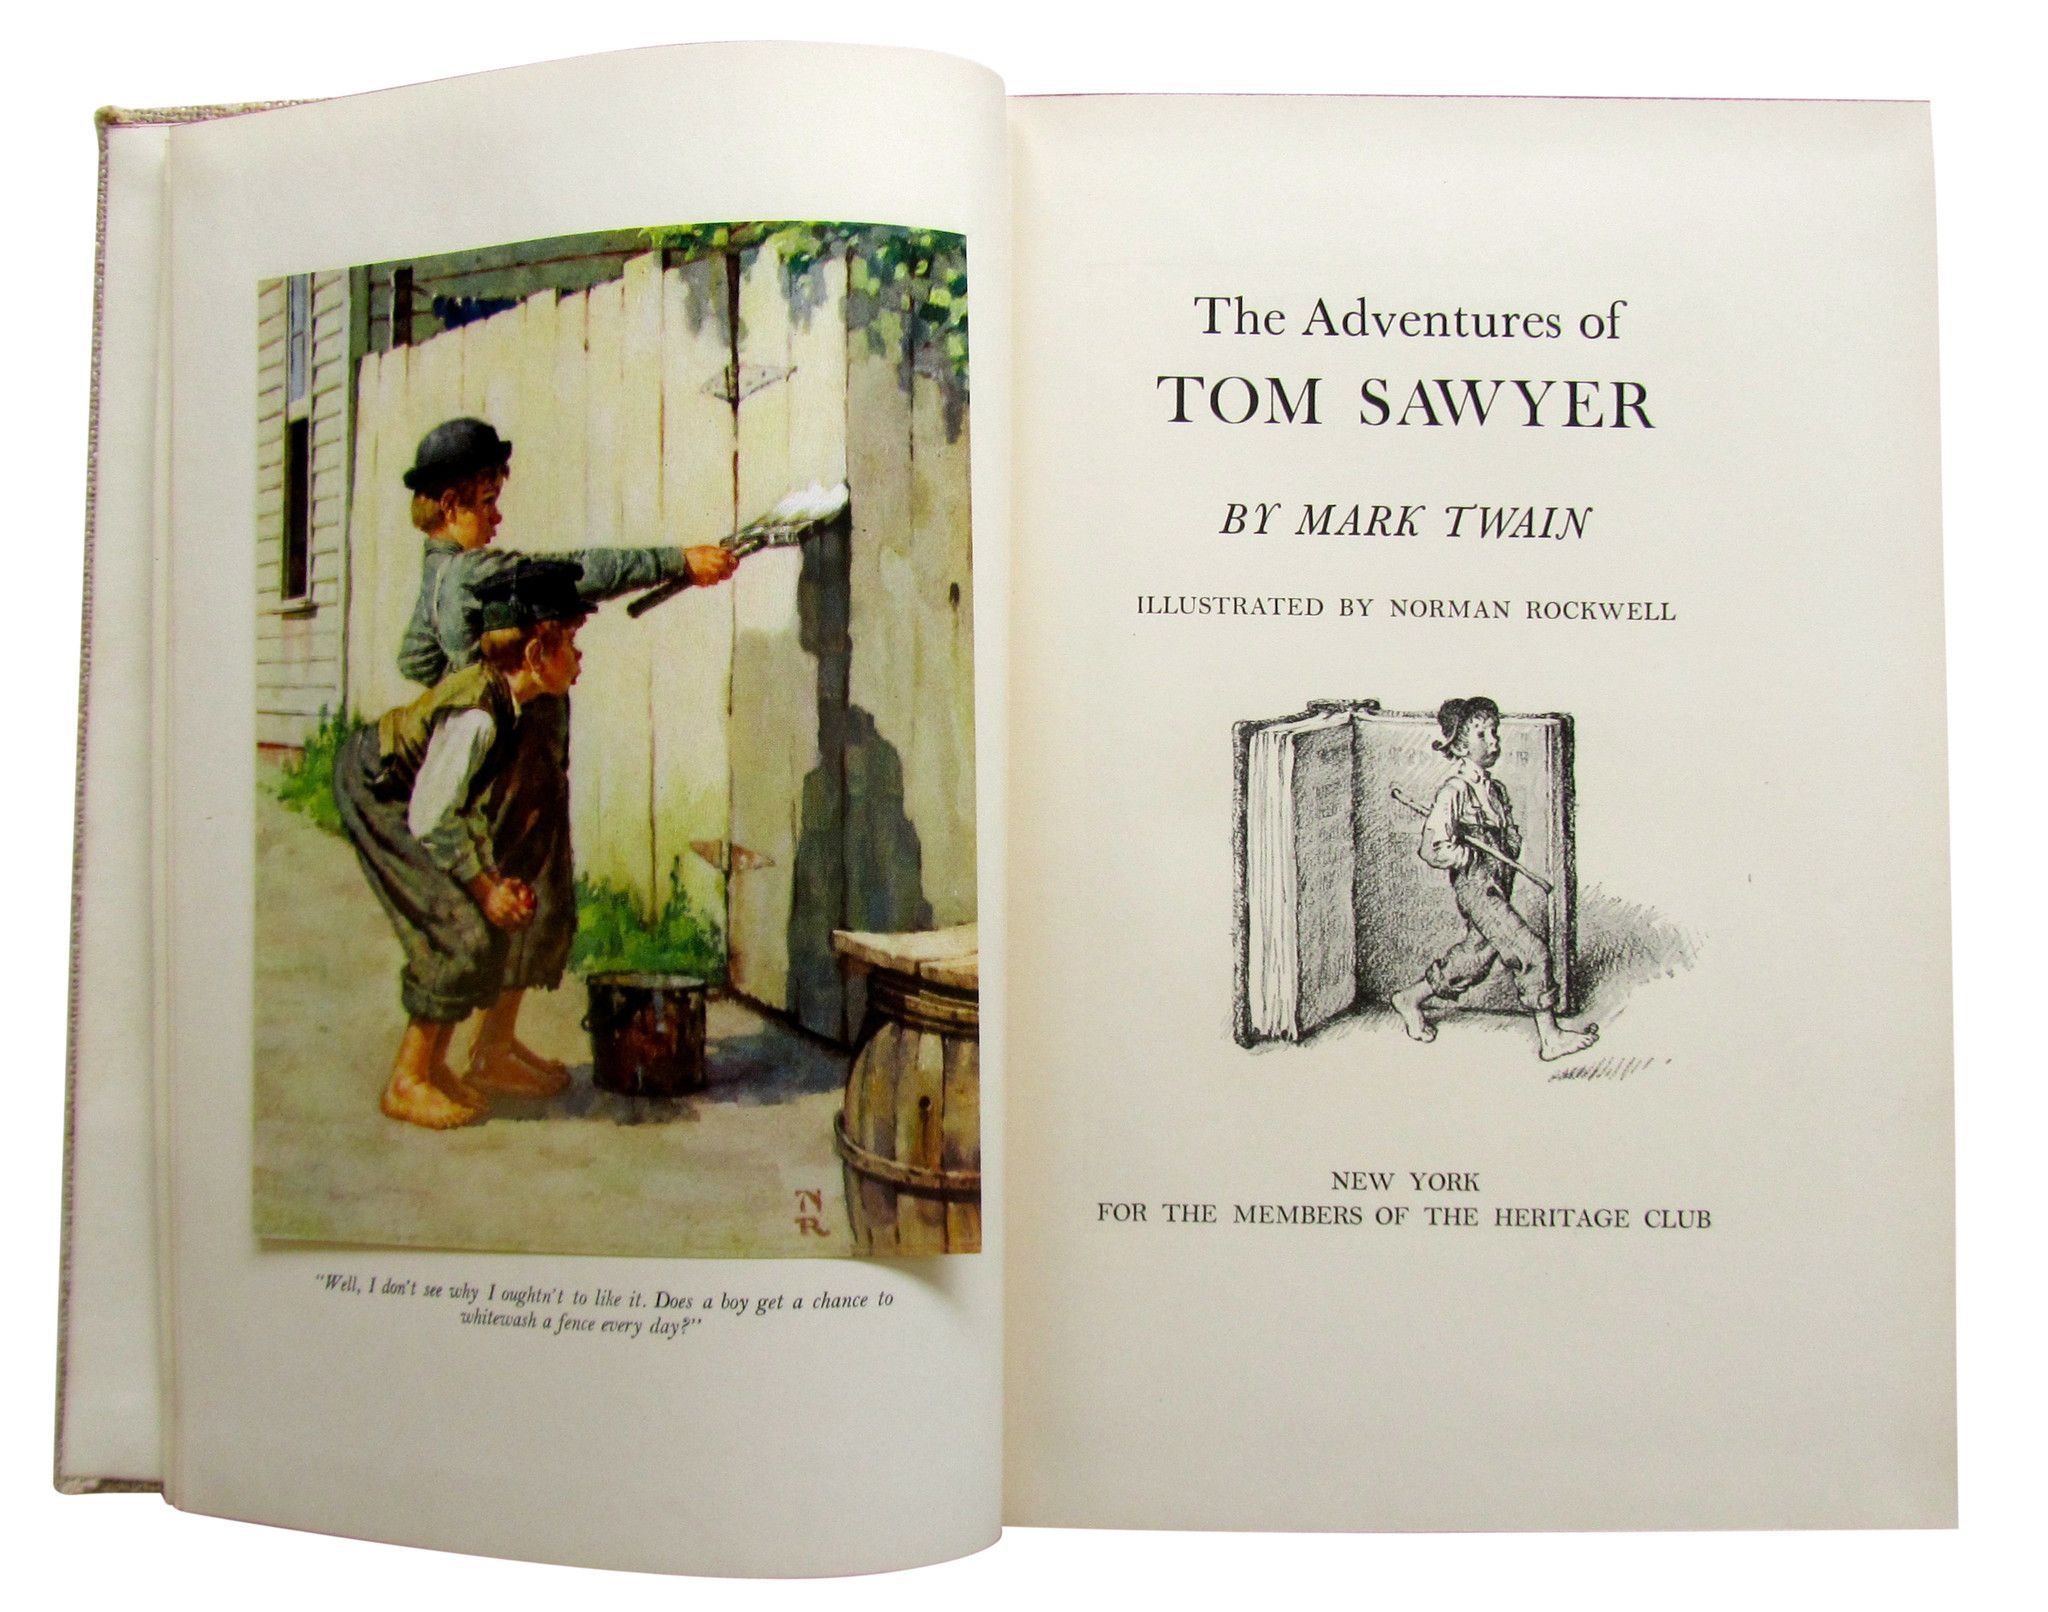 Two Books: The Adventures of Tom Sawyer & Huckleberry Finn Written by Mark Twain (1835-1910) and illustrated by Norman Rockwell (1894-1978)